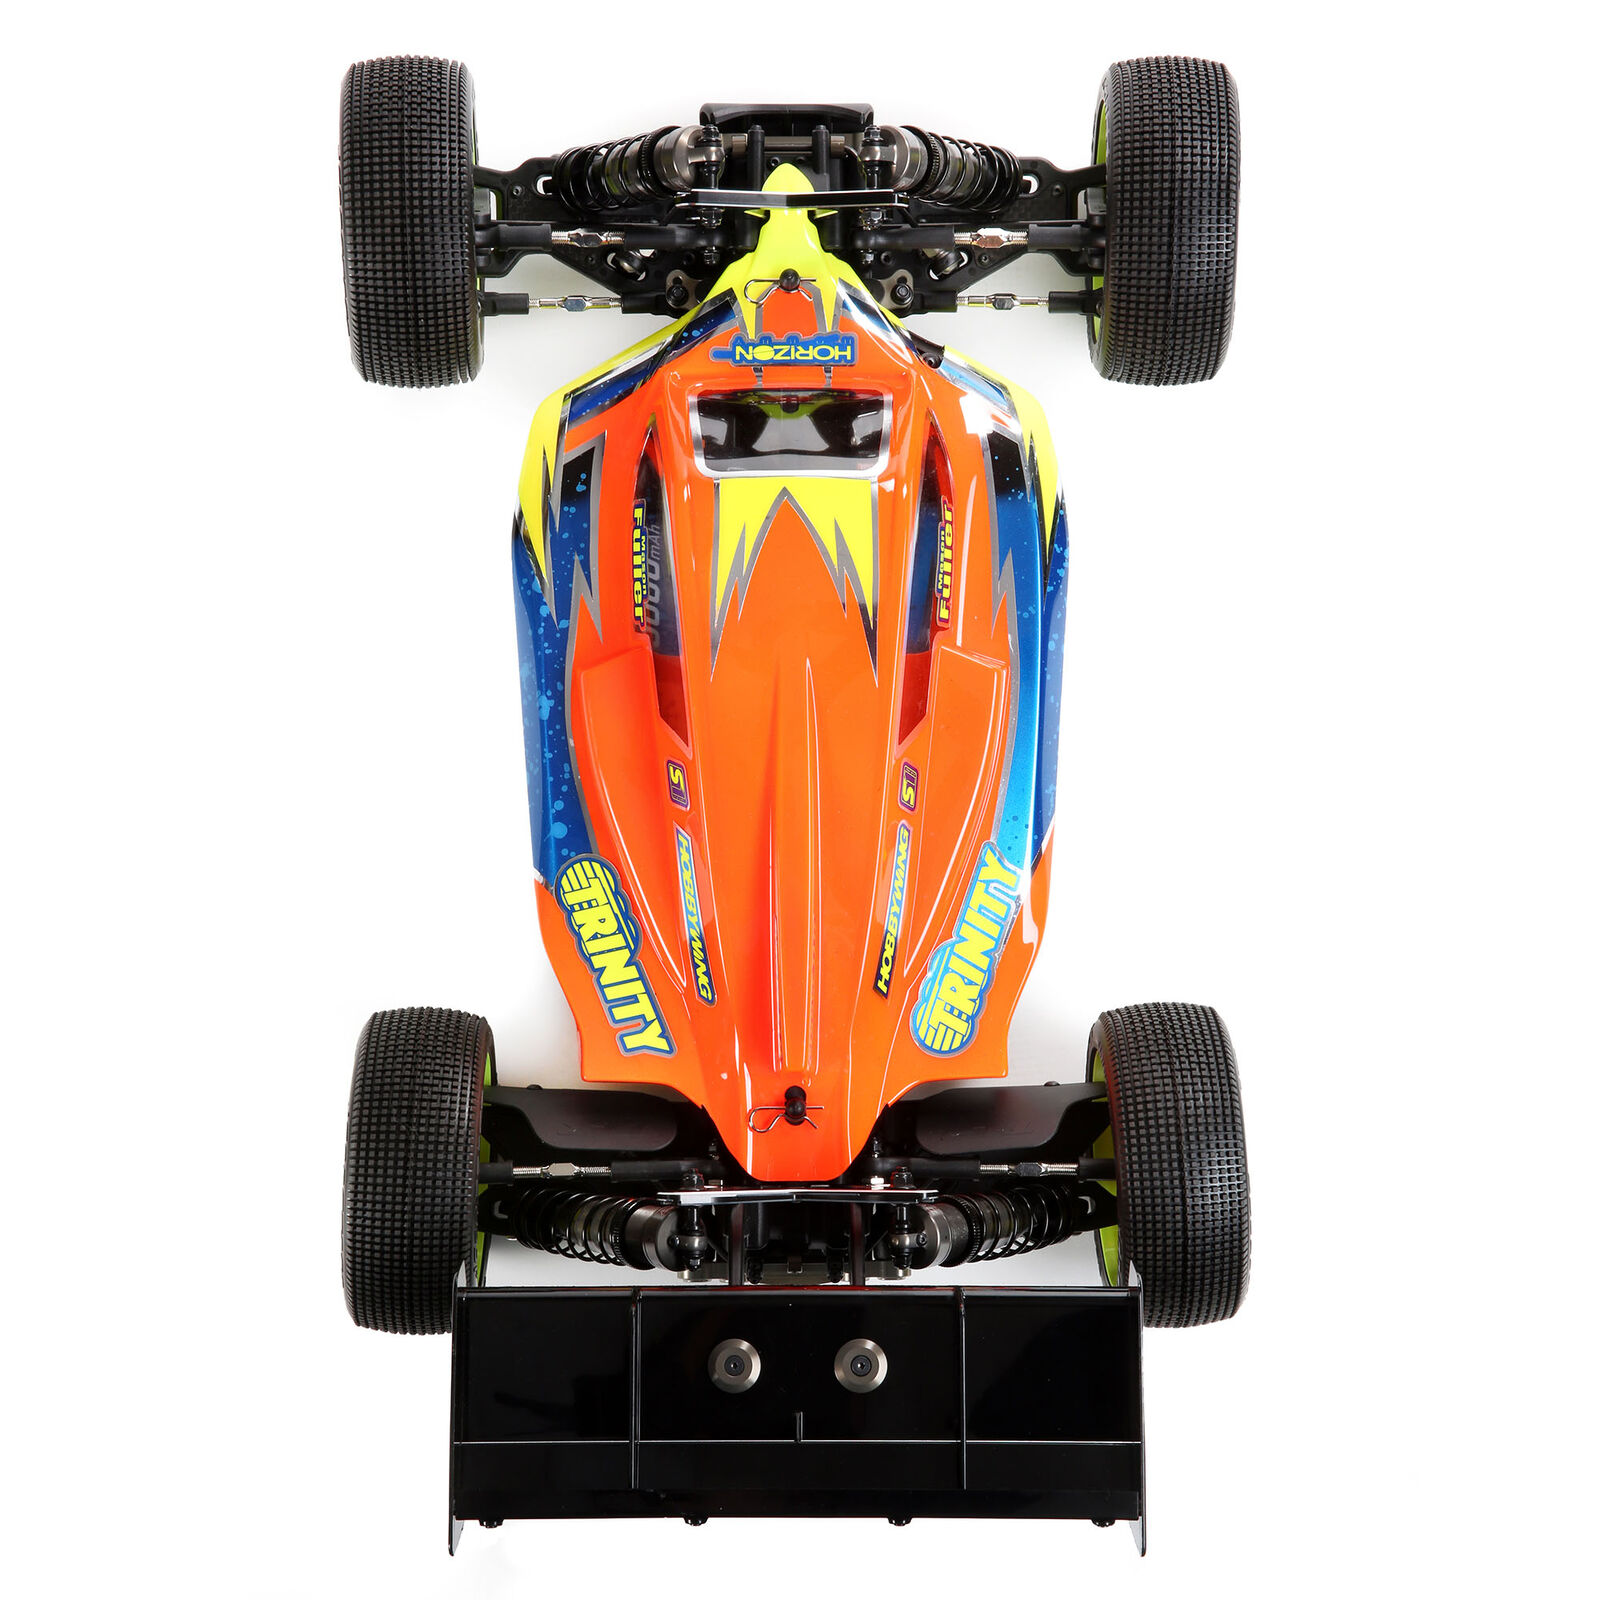 1/8 8IGHT-XE Elite 4WD Electric Buggy Race Kit